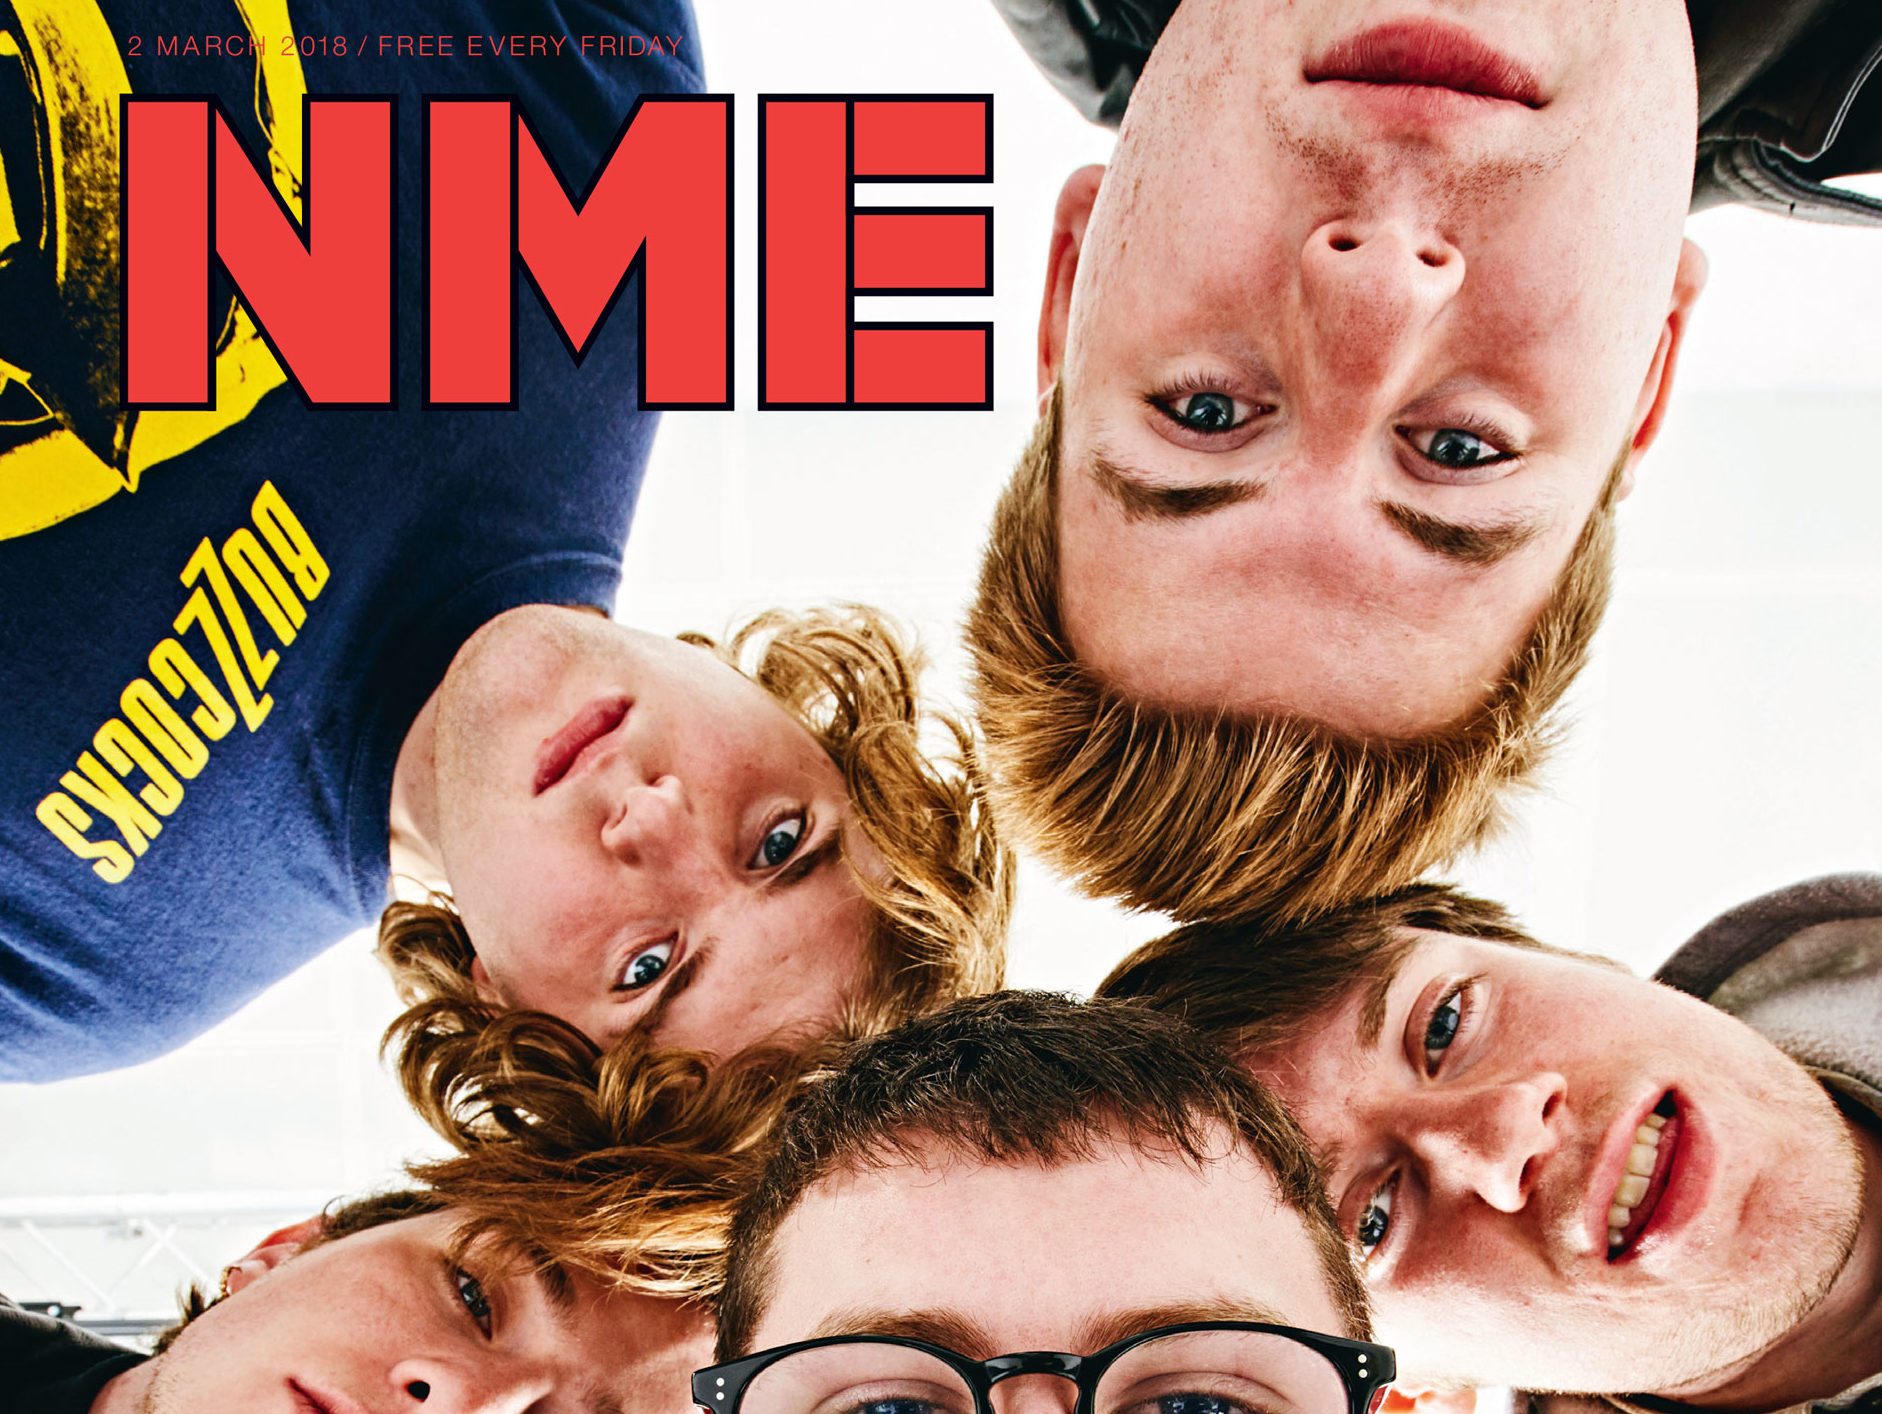 NME magazine to end print edition after 66 years